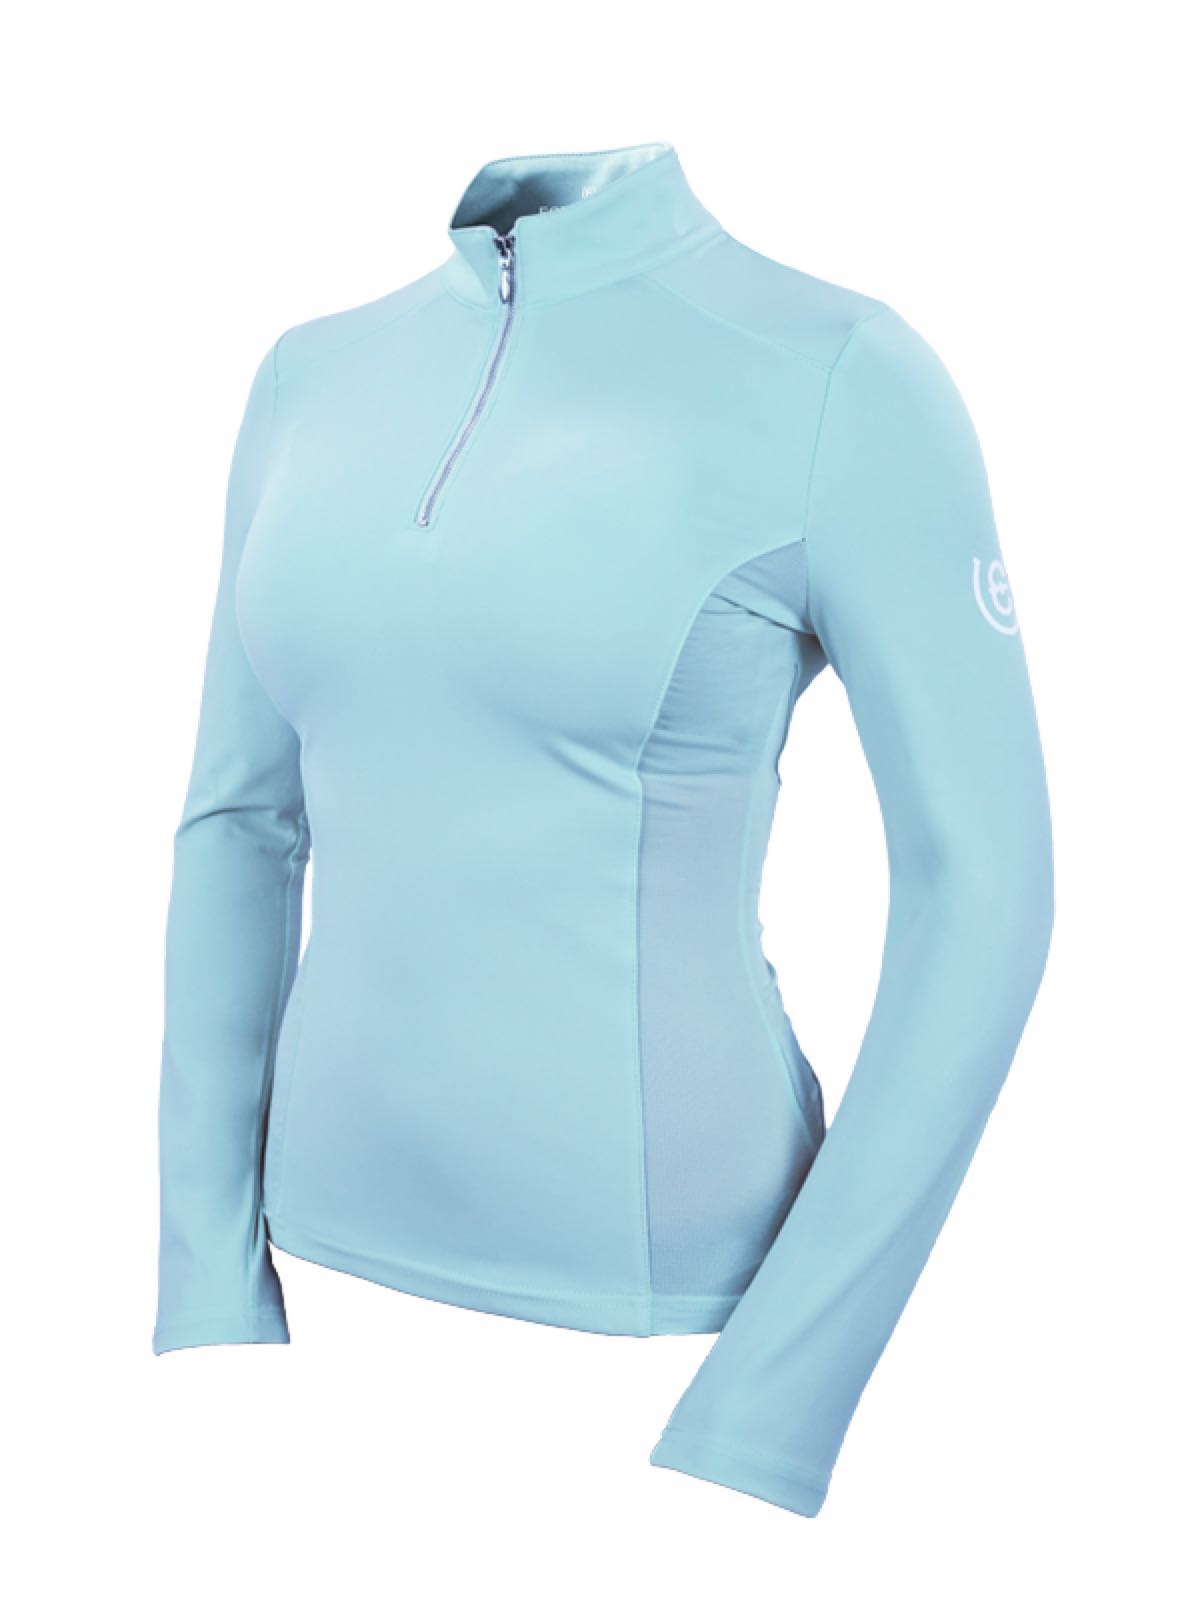 Vision Top Ice Blue